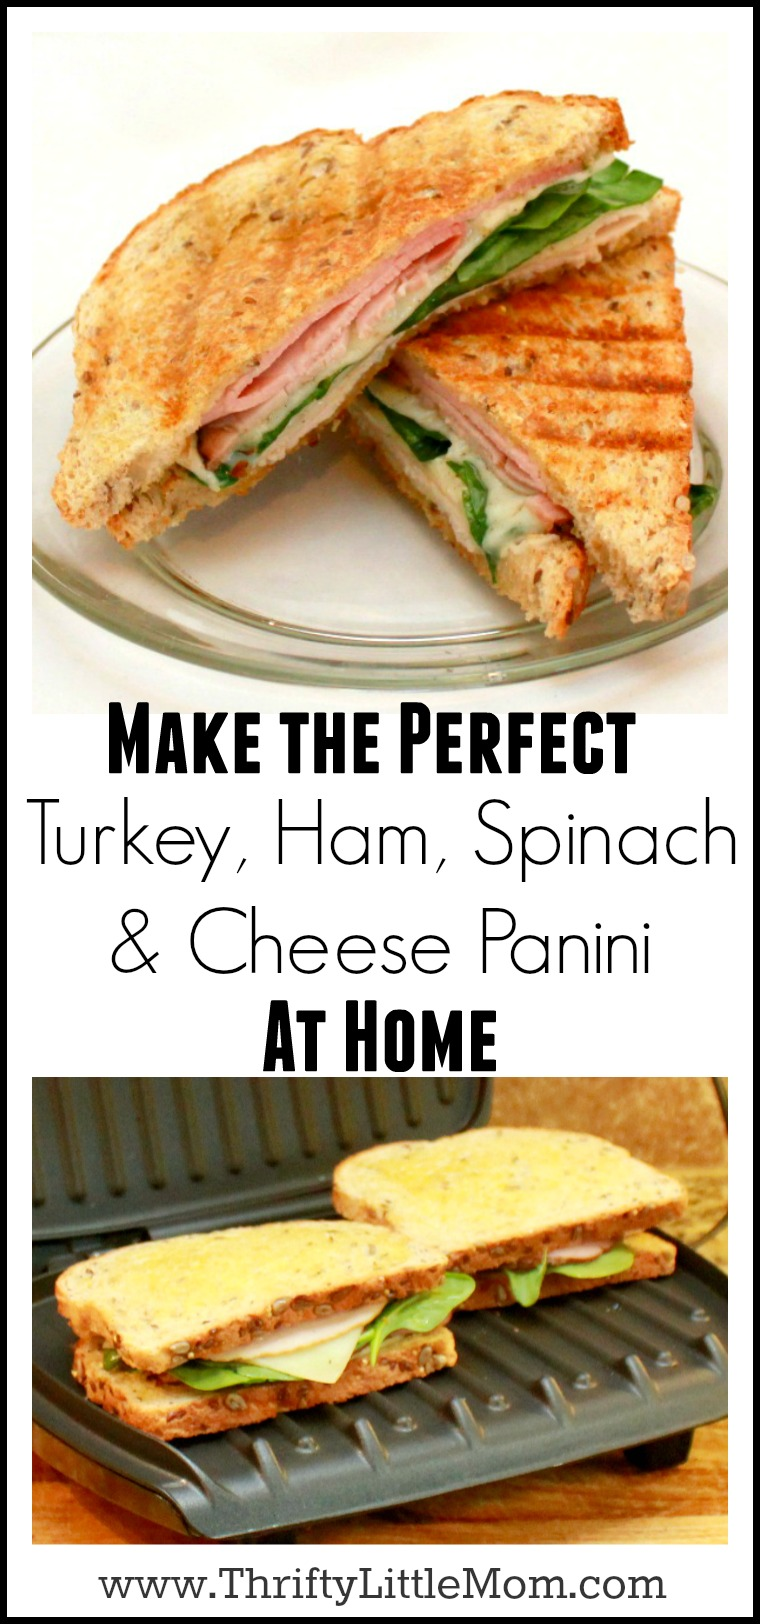 make-the-perfec-turkey-ham-spinach-cheese-panini-at-home